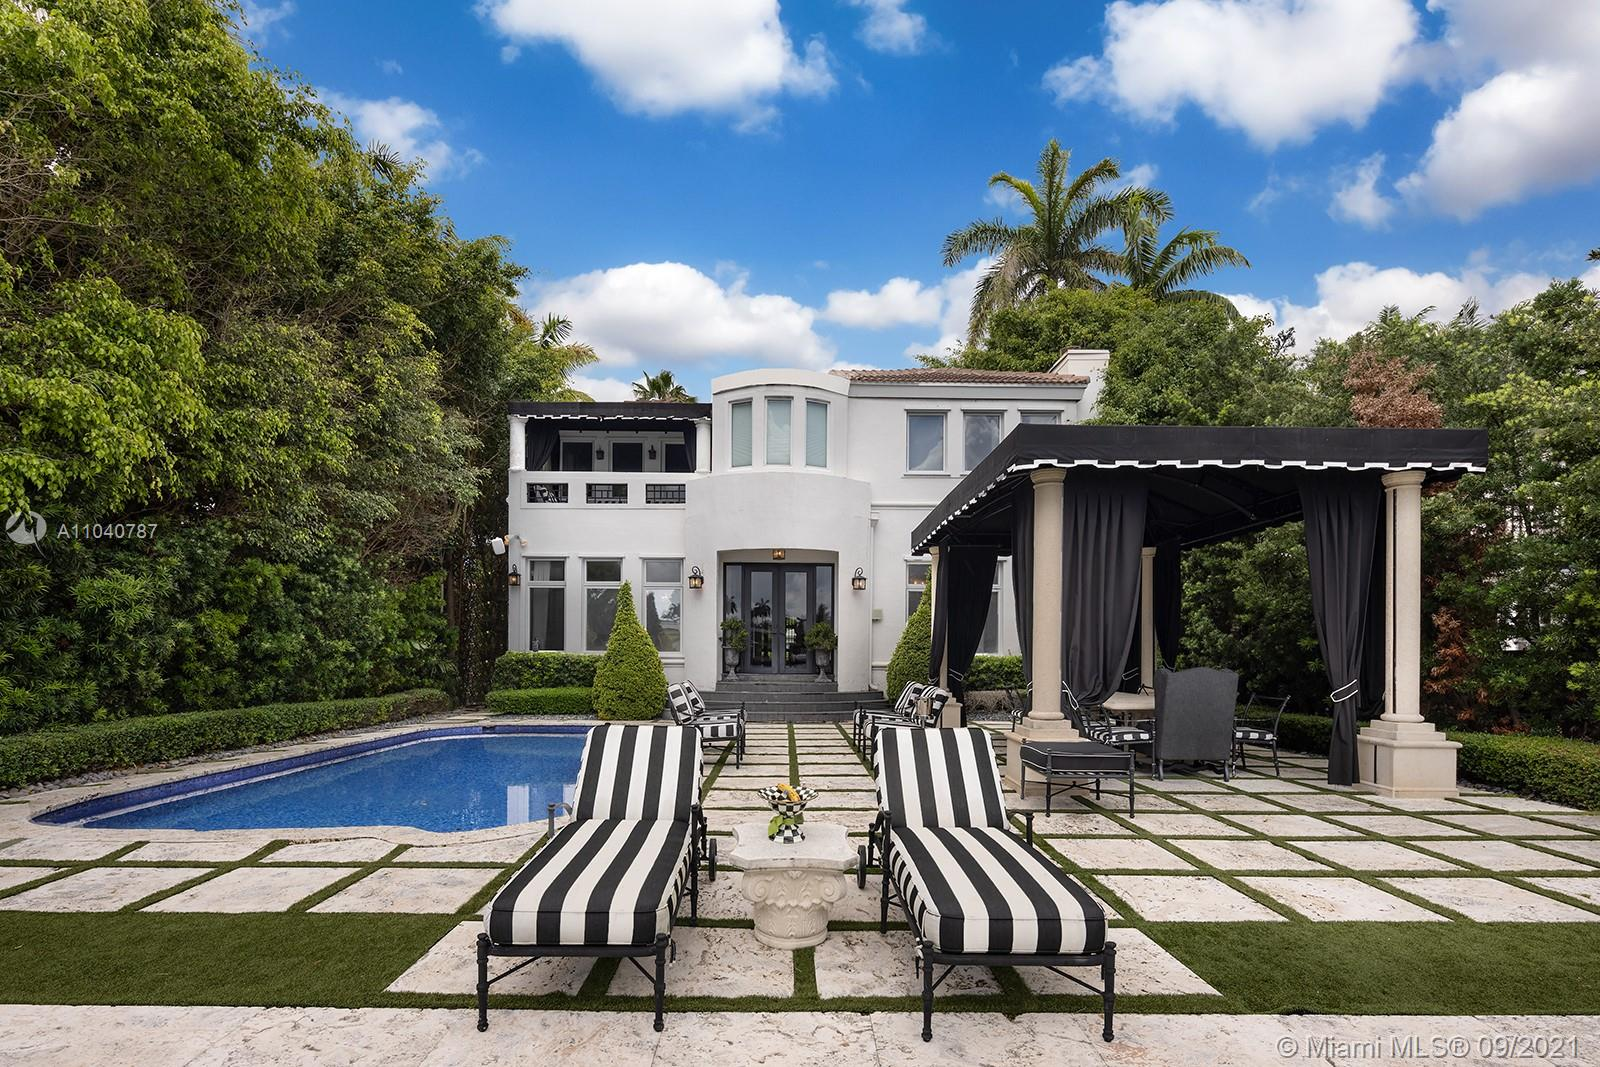 Step Inside With Me! This European inspired waterfront Venetian Islands home was designed by Sam Robbins with architecture by Kobi Karp. 6 Beds, 5.5 Baths complete with black marble & wood flooring throughout, tongue and groove wall paneling, and functional floor plan. Water views from the chef's kitchen complete with Viking 6-burner cooktop, white marble counters, Subzero fridge & custom sliding glass doors that allow for an open or private dining experience. An entertainer's dream with a 14-person dining table, temp-controlled wine wall & a fireplace. Arrive into your elegant brick driveway past oversized privacy hedges and dramatic landscaping. Enjoy the backyard oasis that includes a shimmering mosaic-tiled pool, covered outdoor dining, and wide bay views with breezes off the ocean.